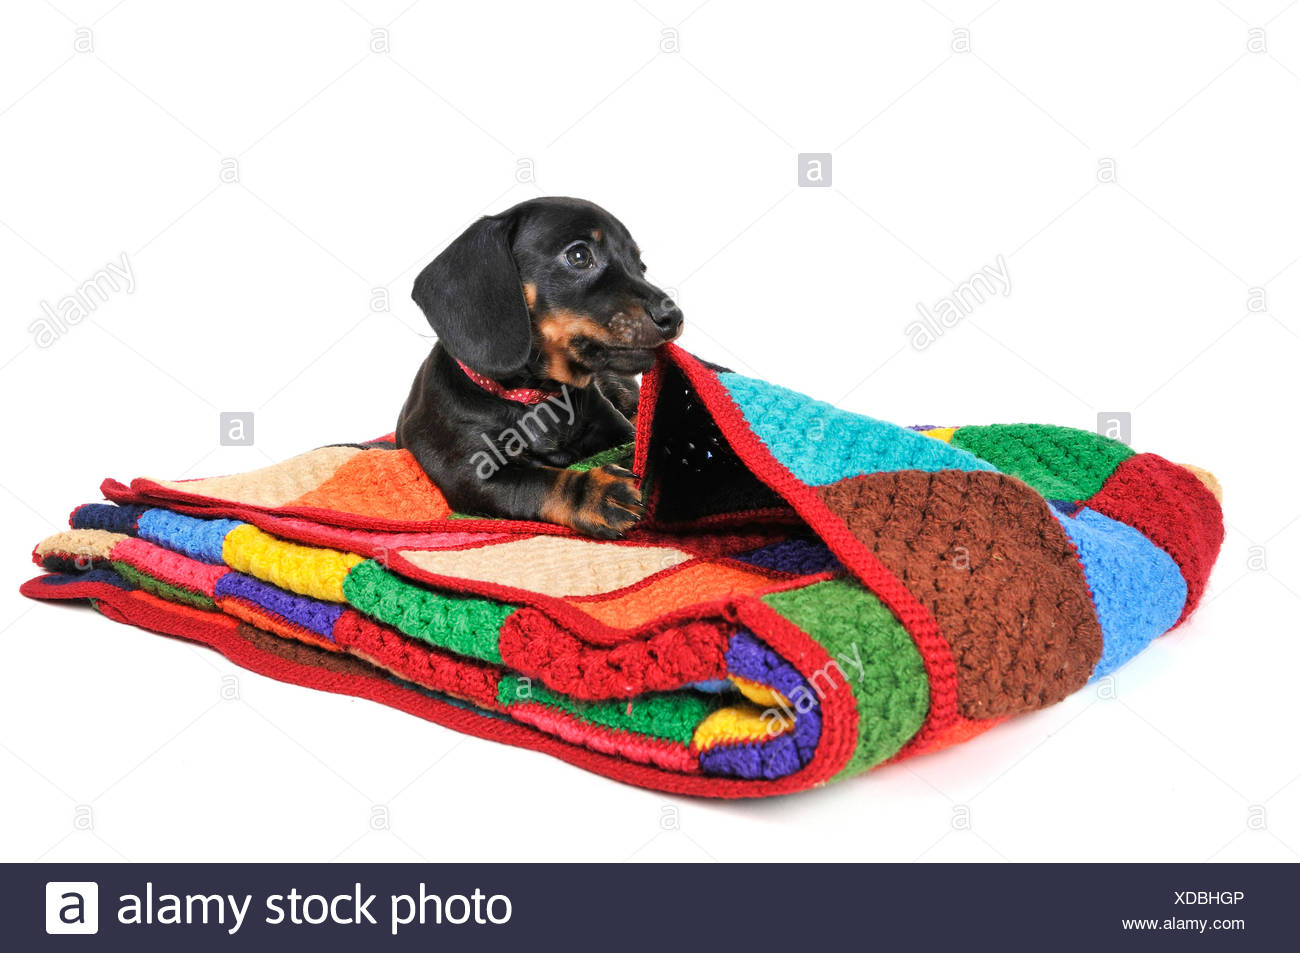 Short-haired Dachshund, Short-haired sausage dog, domestic dog (Canis lupus f. familiaris), dark-haired puppy lying on a coloured woolen blanket, cut-out Stock Photo